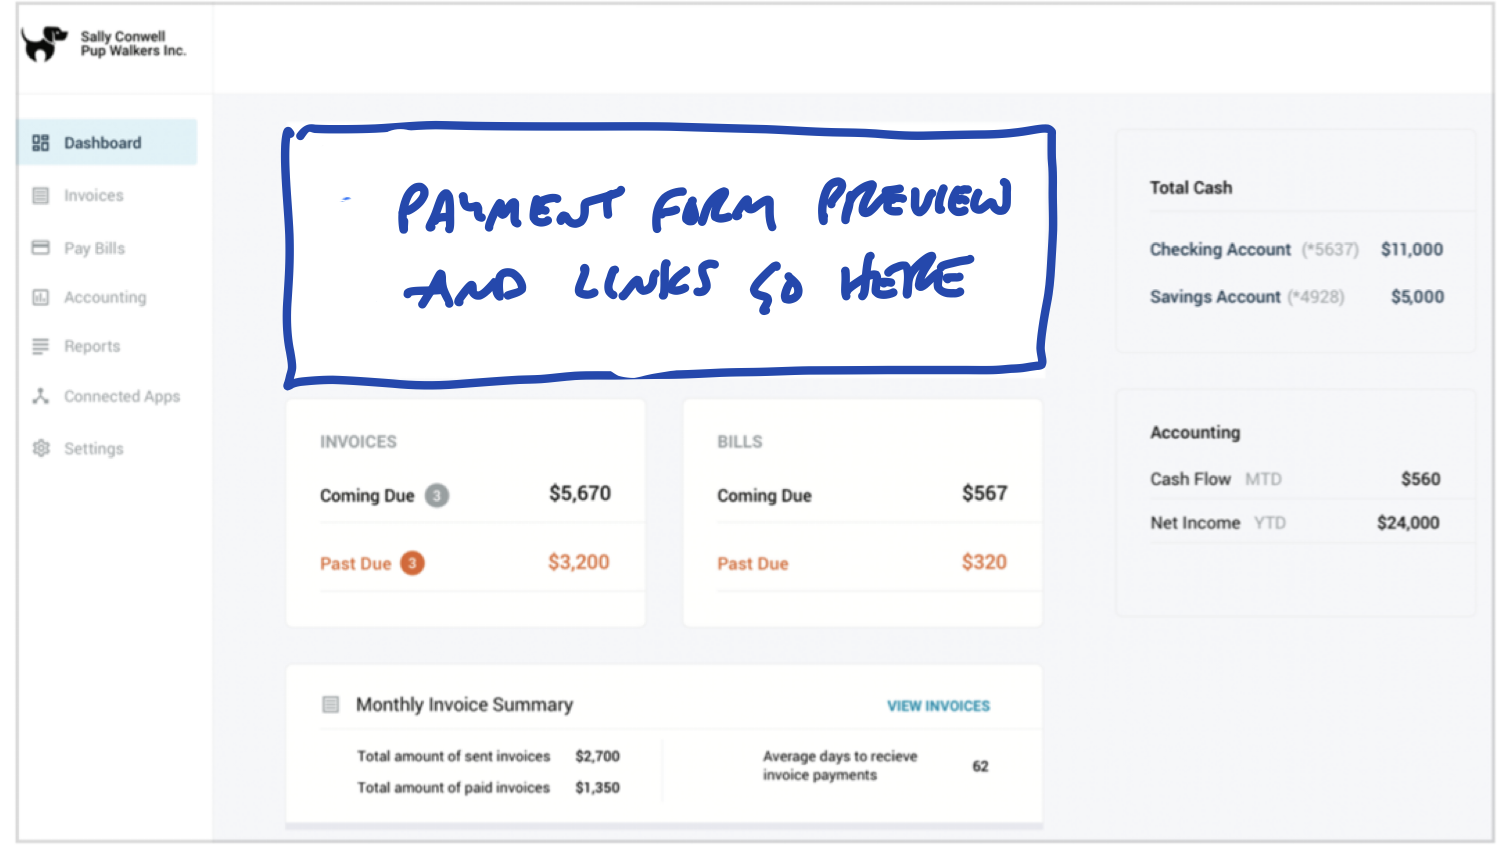 A screenshot of the dashboard with some hand drawing on top. A box is hand drawn at the top of the dashboard. Handwritten laters say: Payment form preview and links go here.